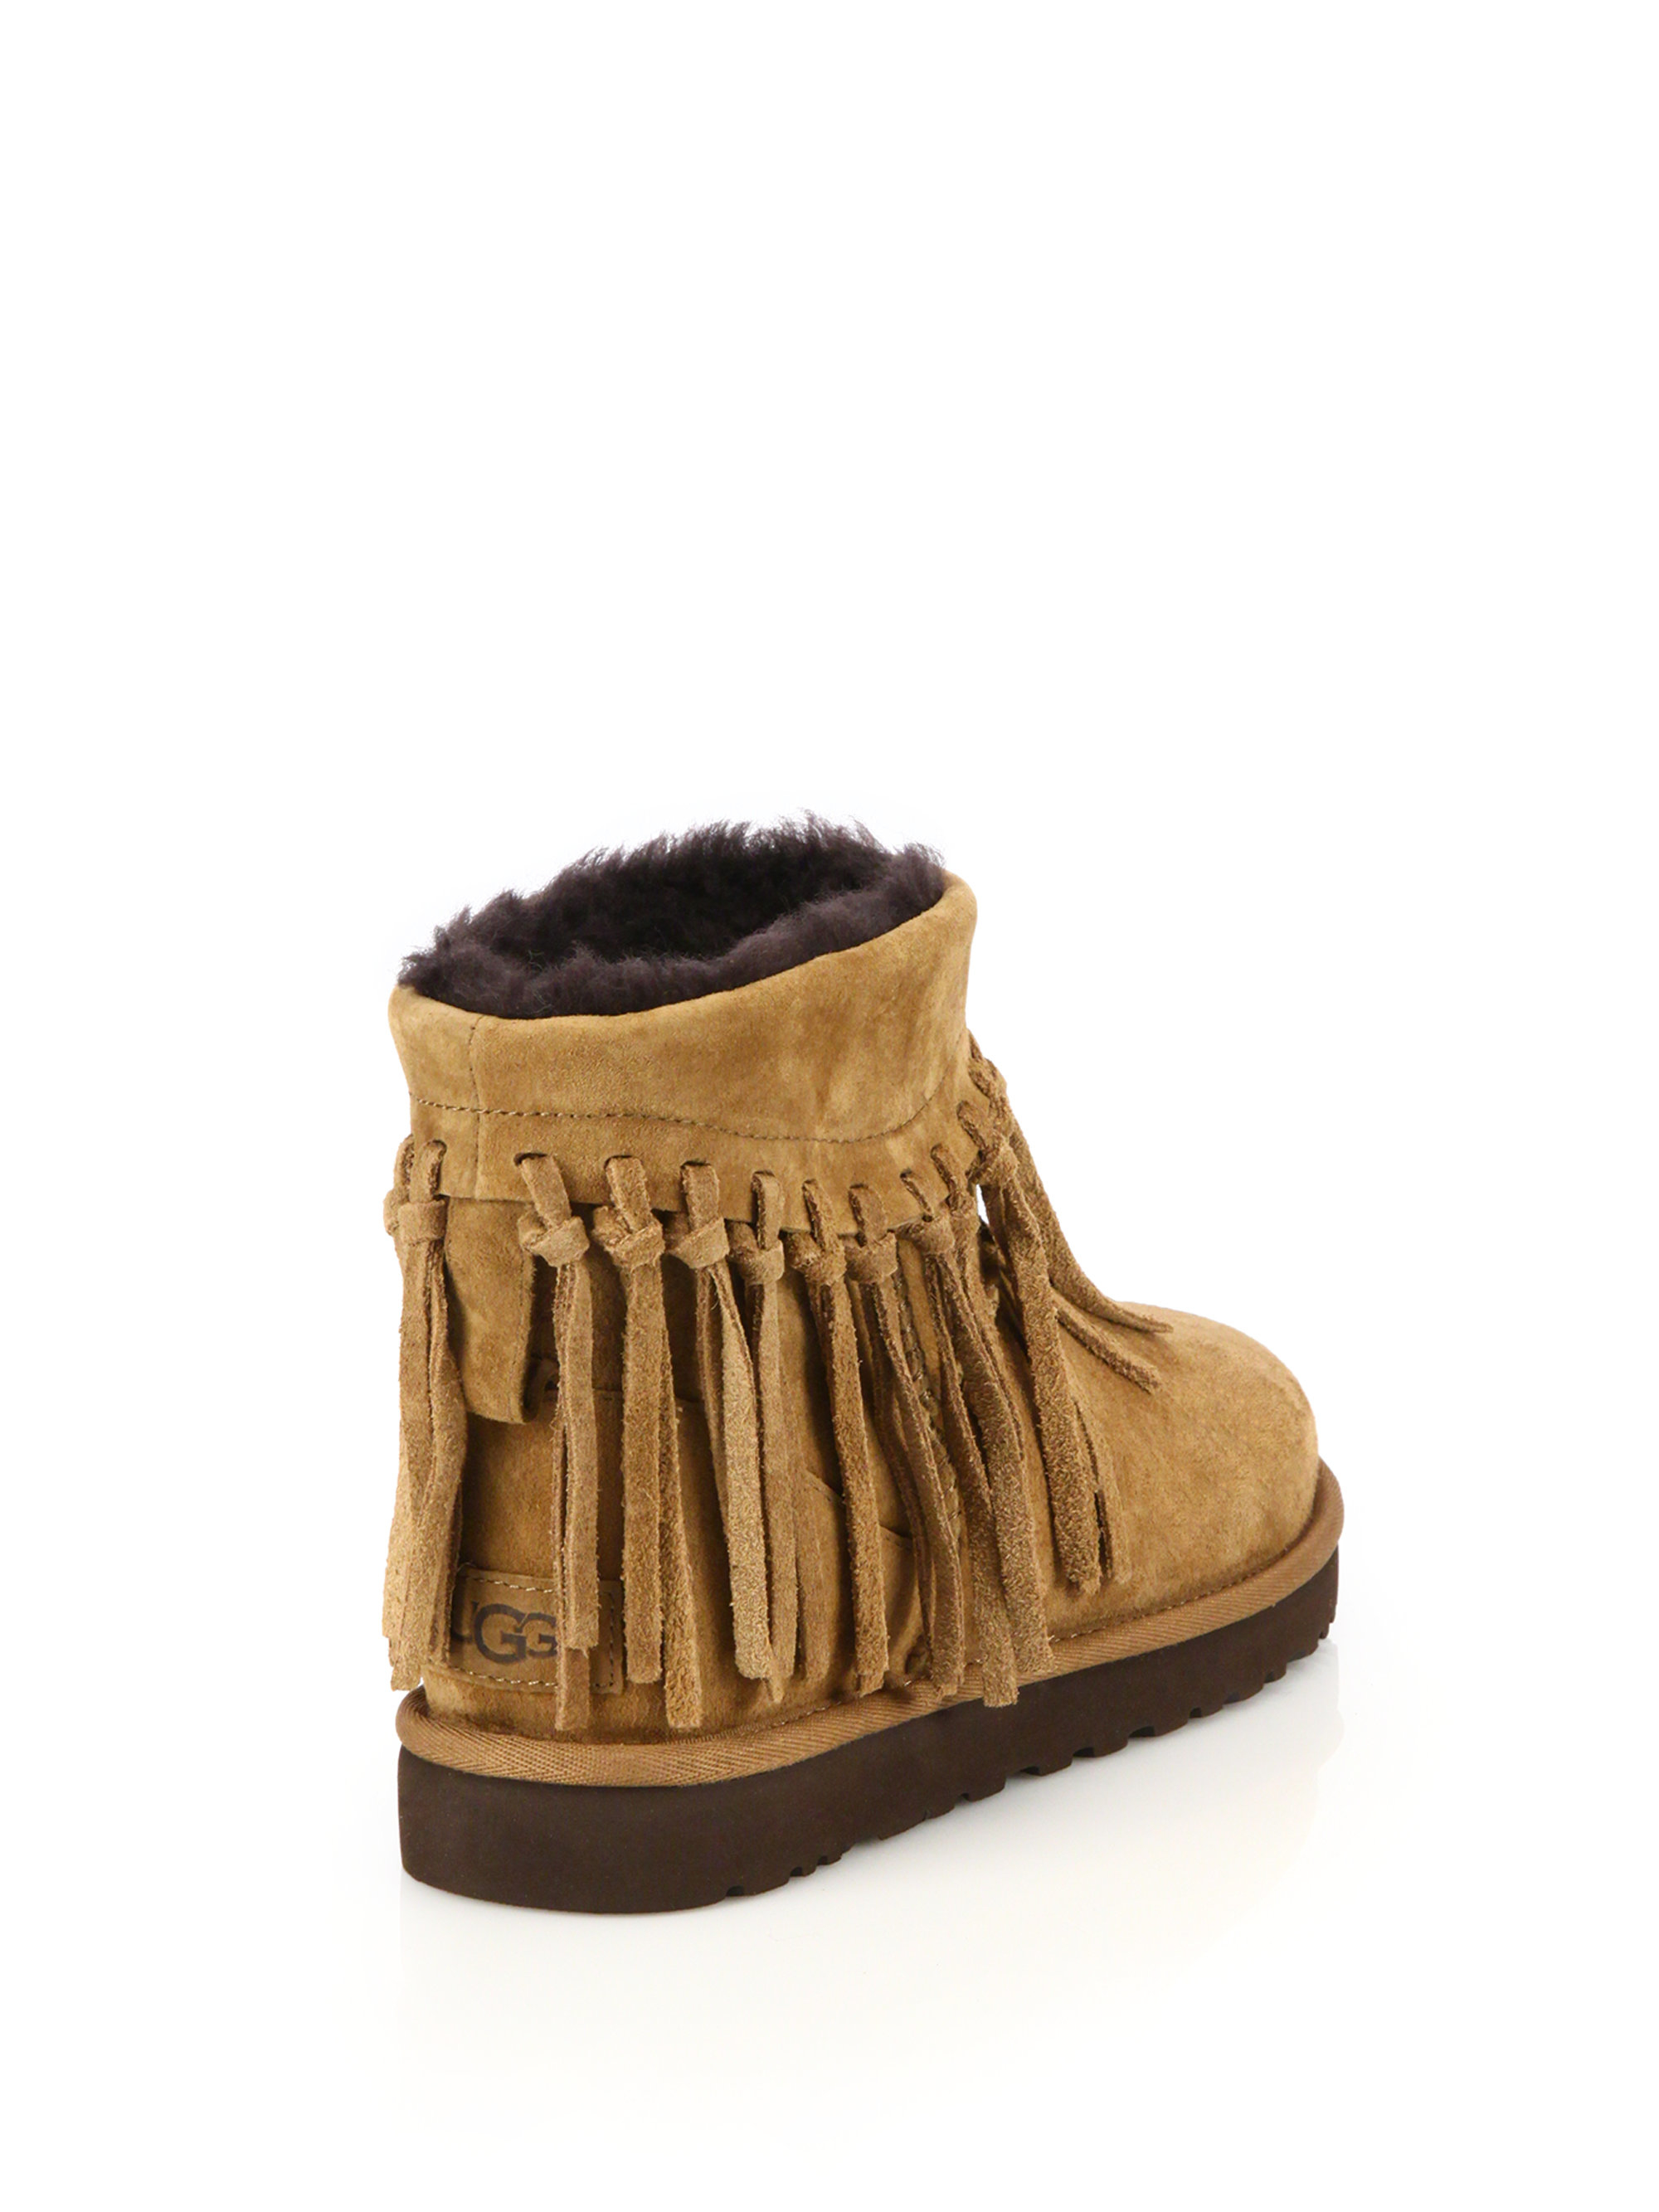 b0641603286 UGG Brown Wynona Fringed Suede Boots